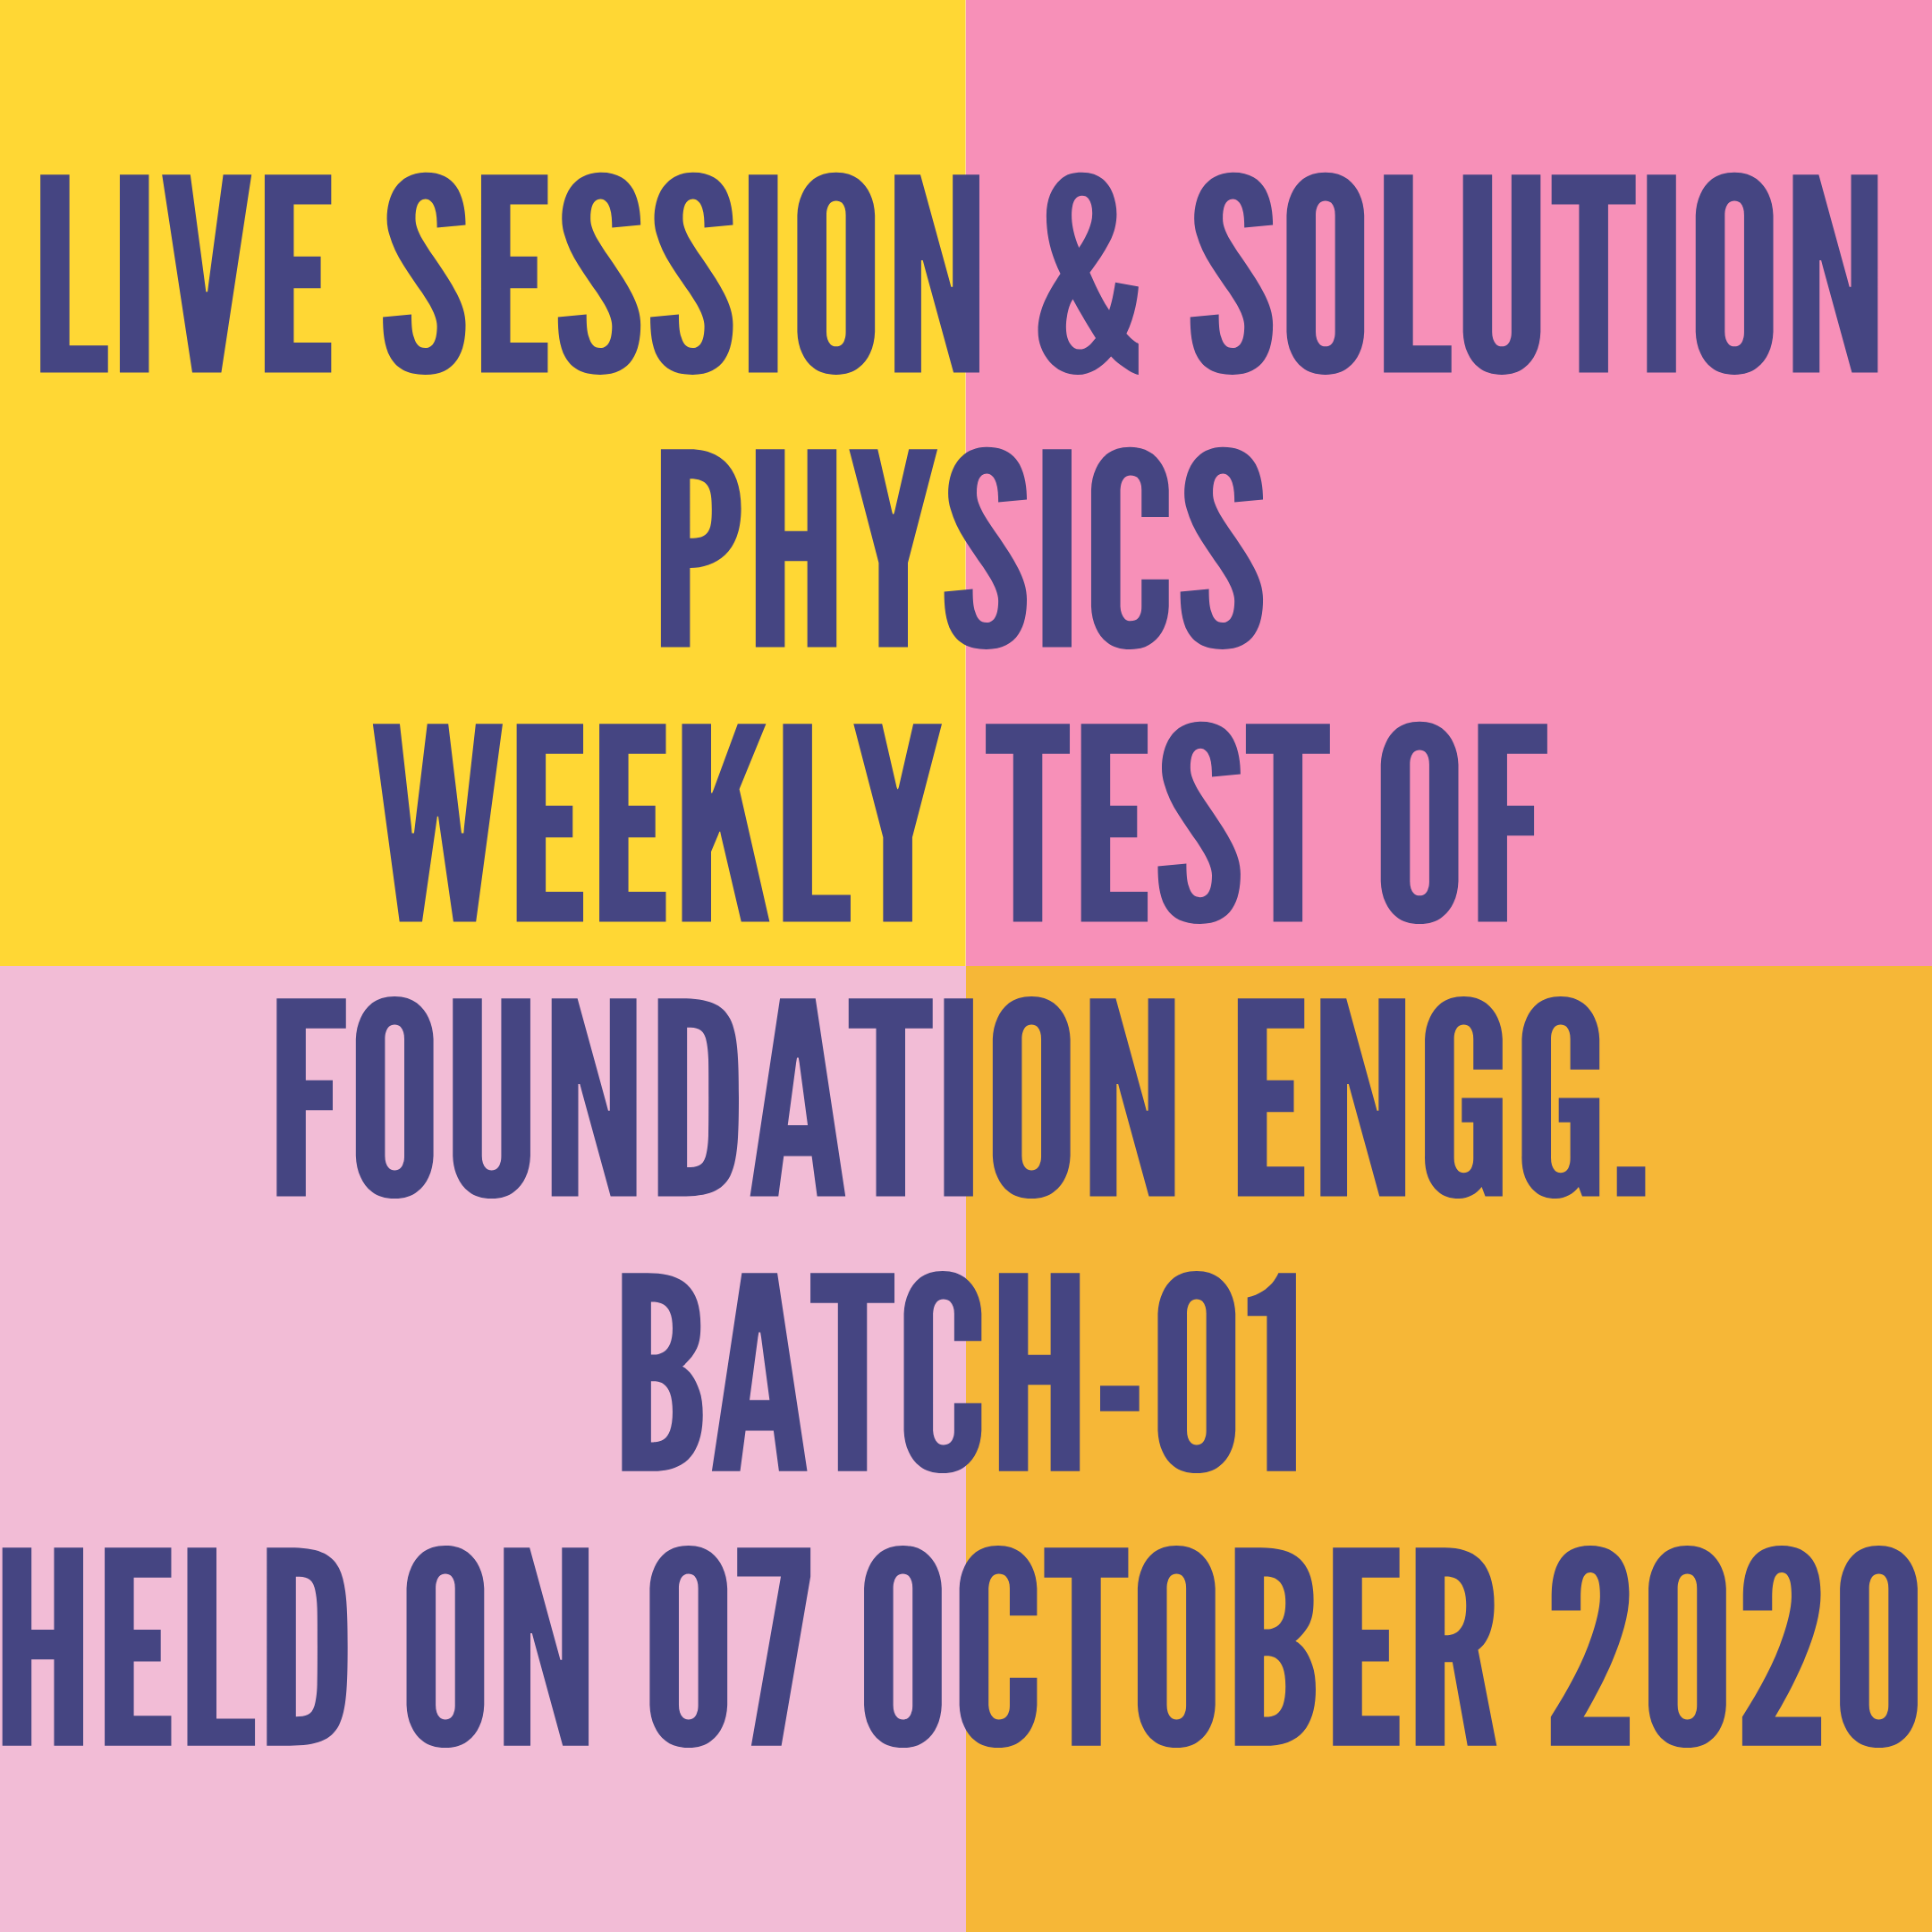 LIVE SESSION & SOLUTION PHYSICS WEEKLY TEST OF FOUNDATION ENGG. BATCH-01  HELD ON 07 OCTOBER 2020